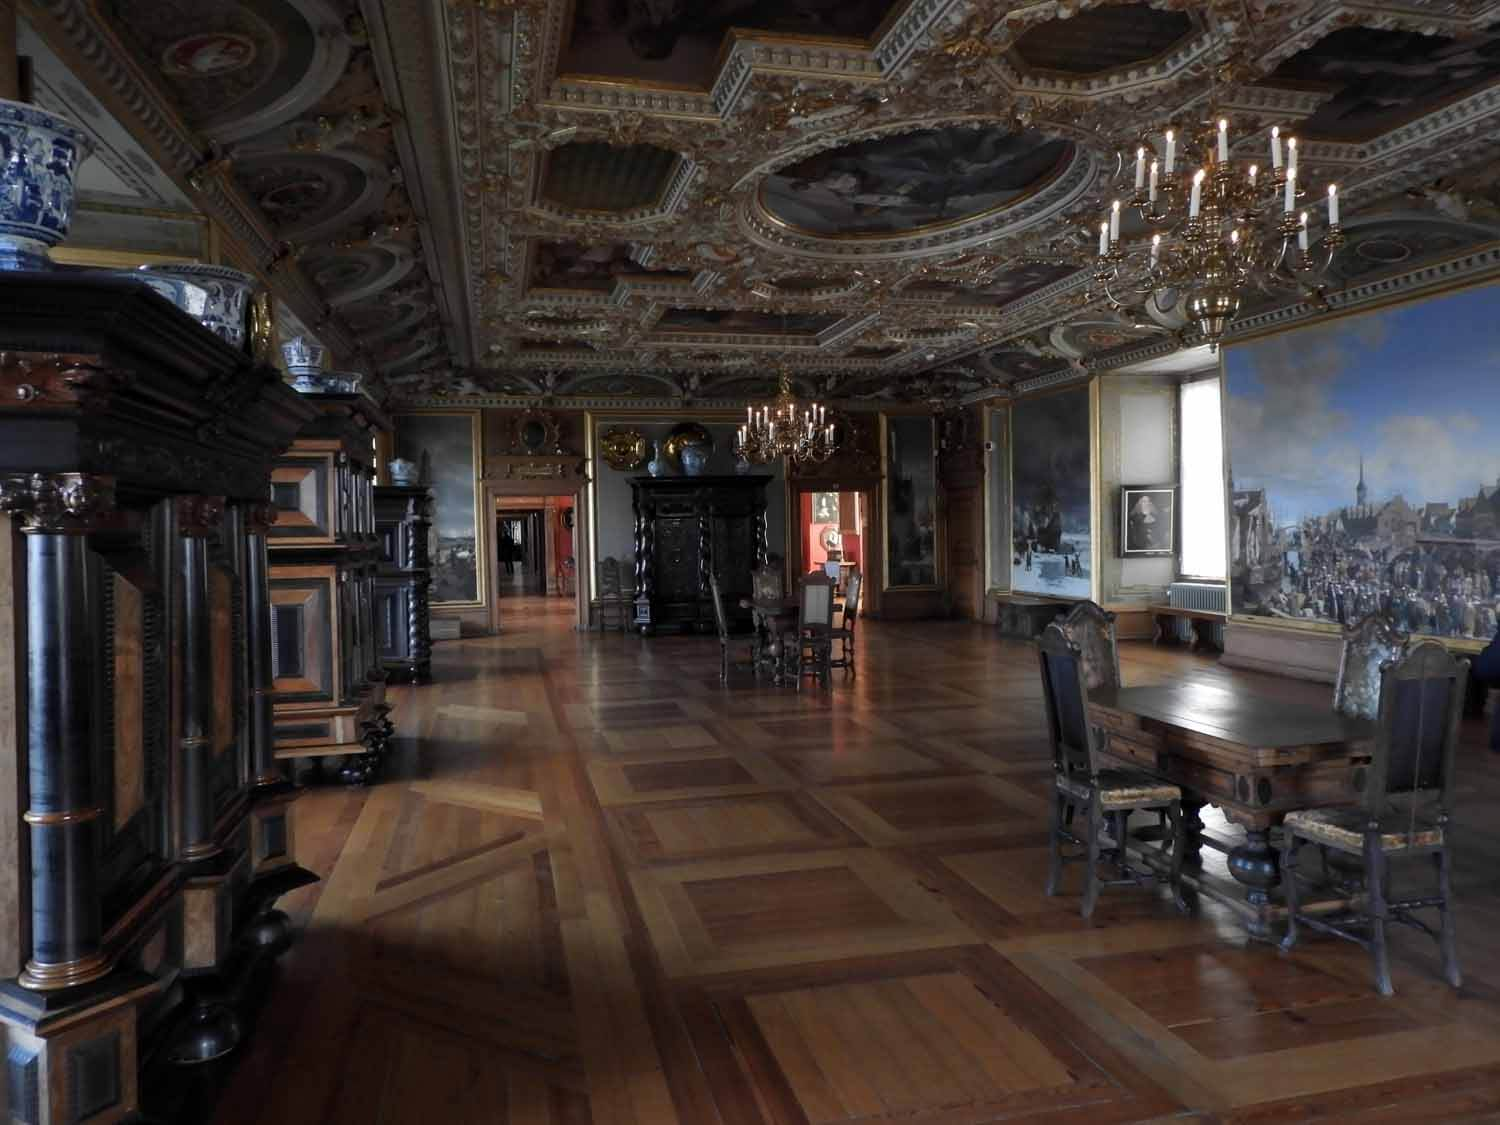 denmark-frederiksborg-slot-castle-interior-tour-furniture-painting-gold.JPG